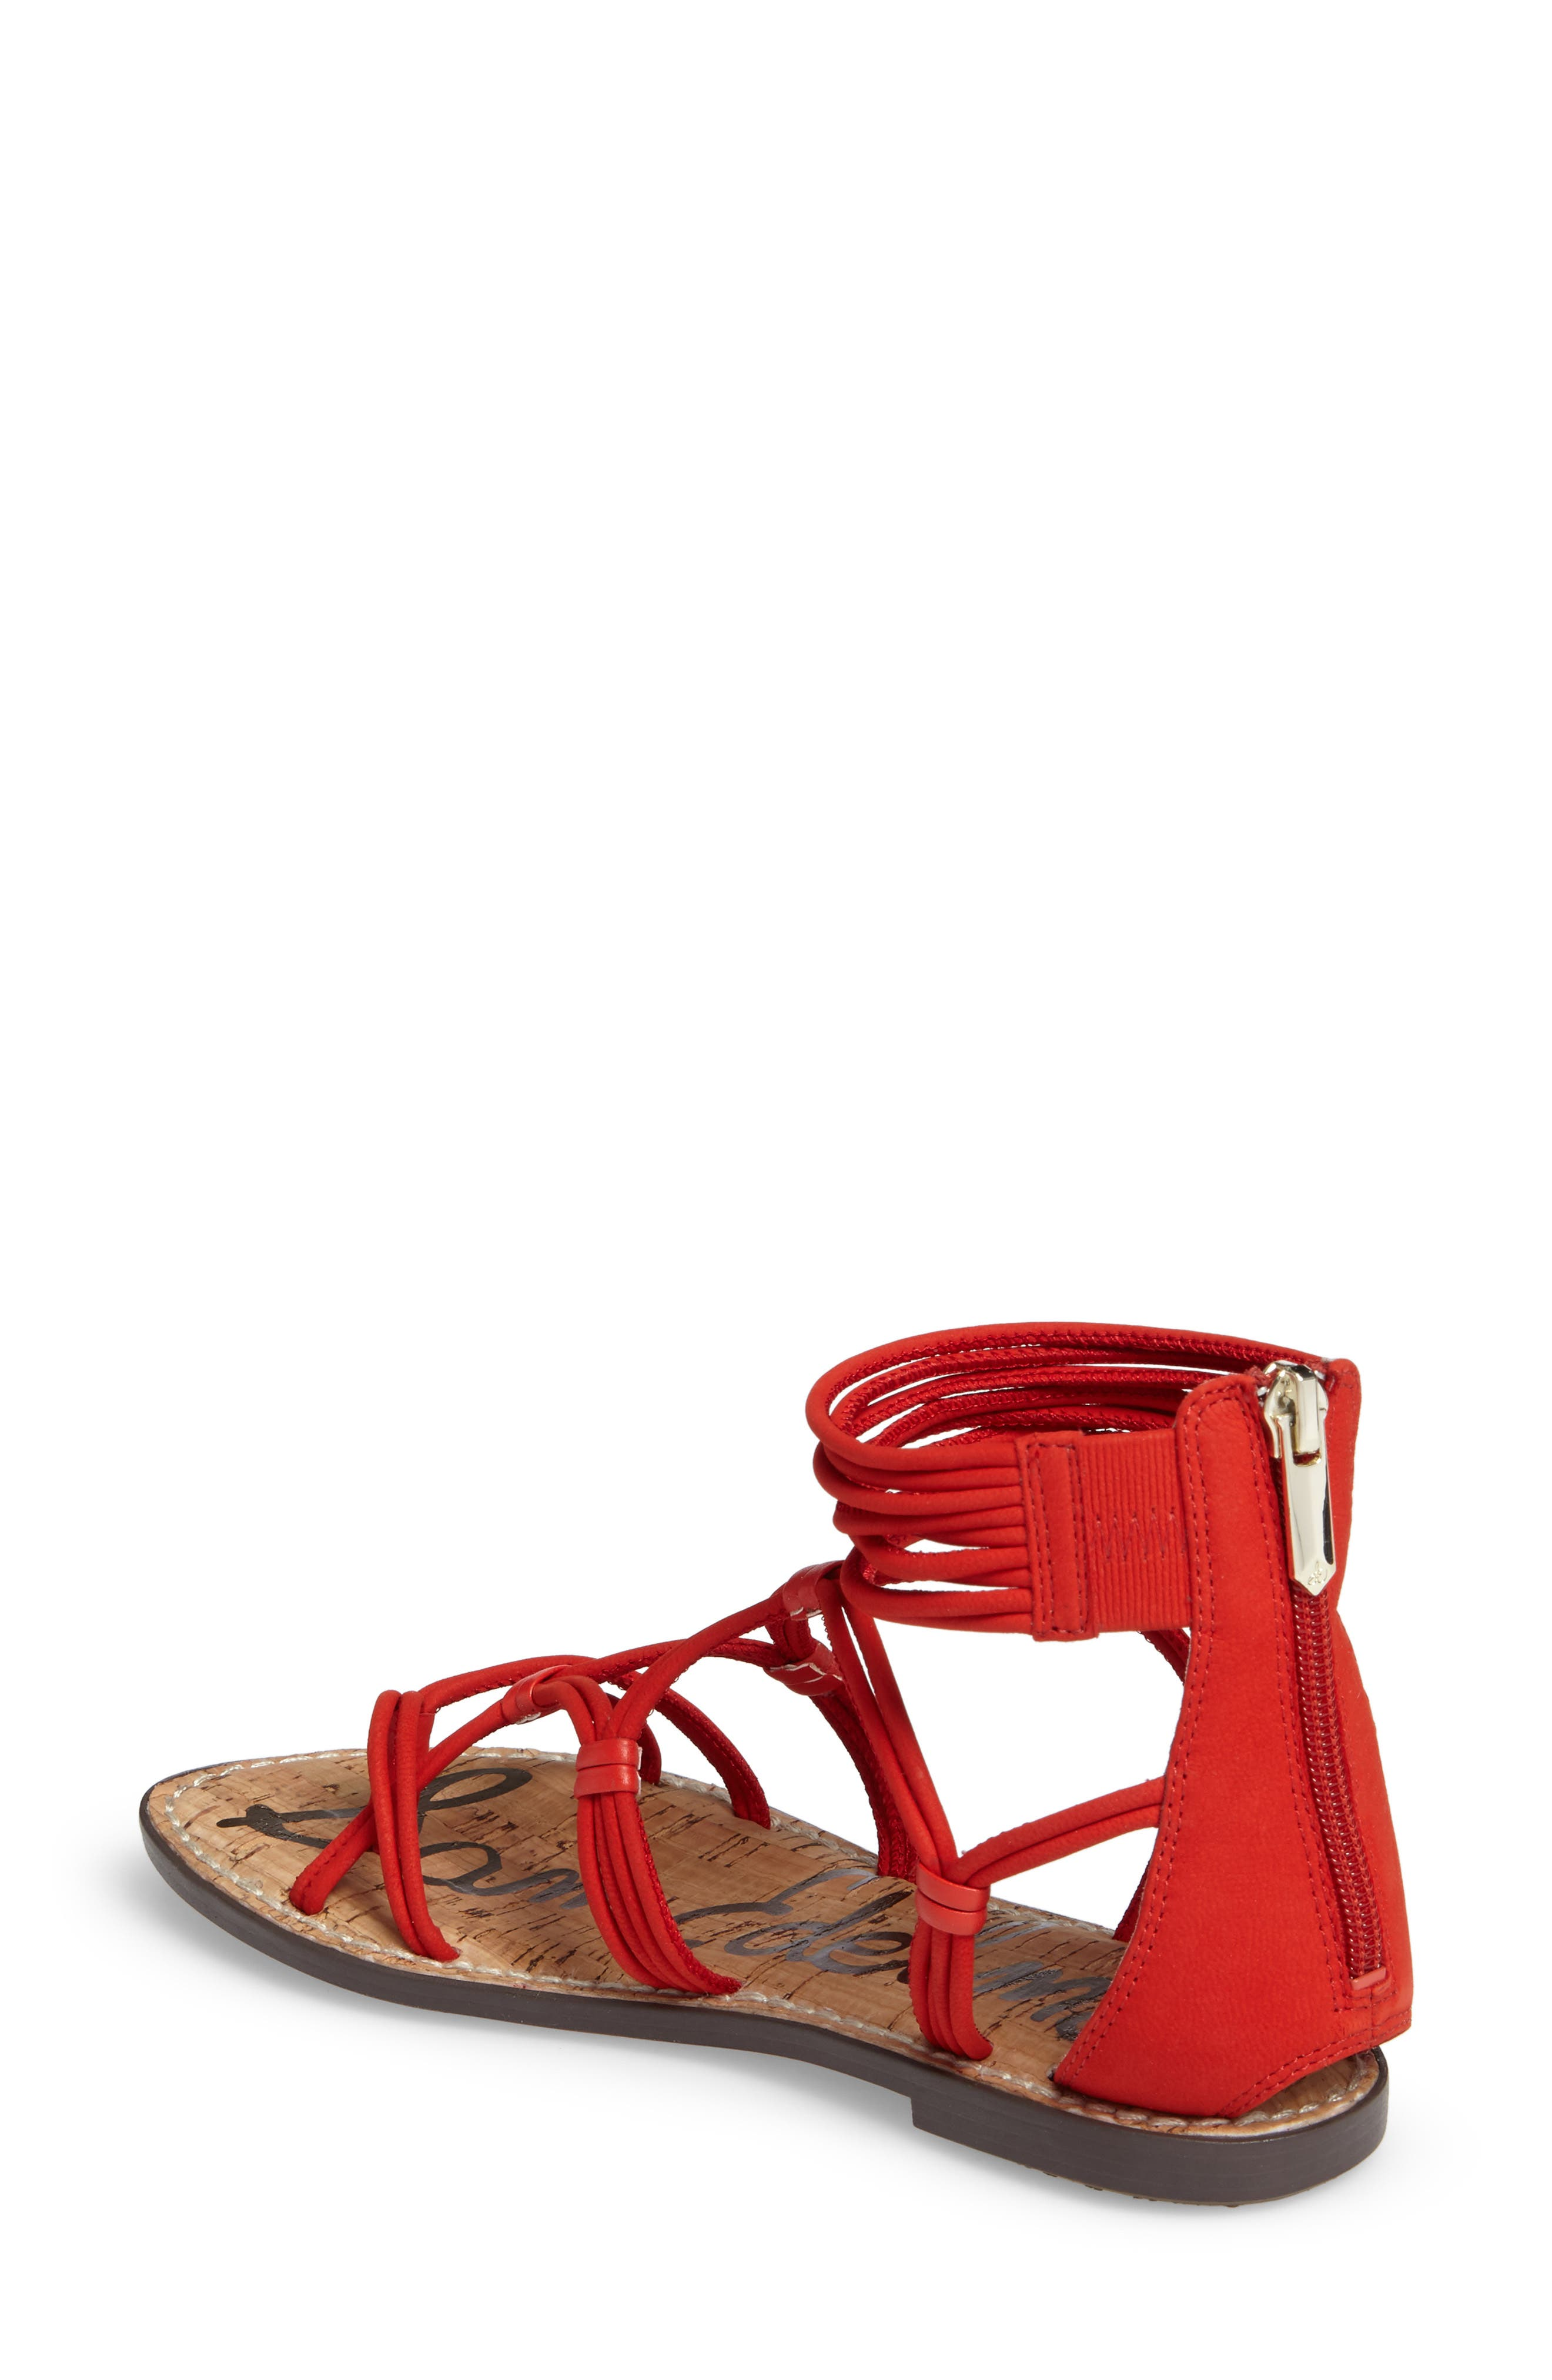 Alternate Image 2  - Sam Edelman Gianni Sandal (Women)